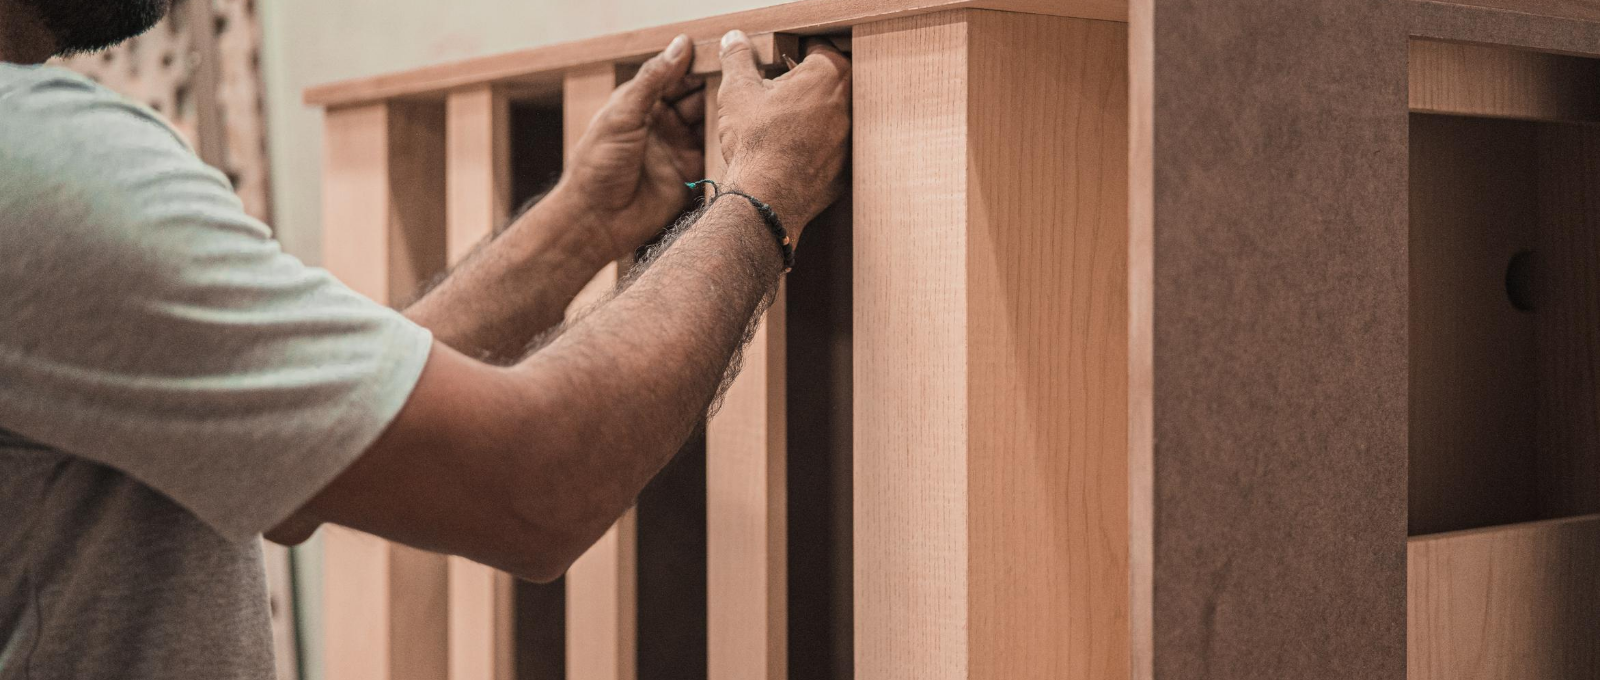 building and installing furniture